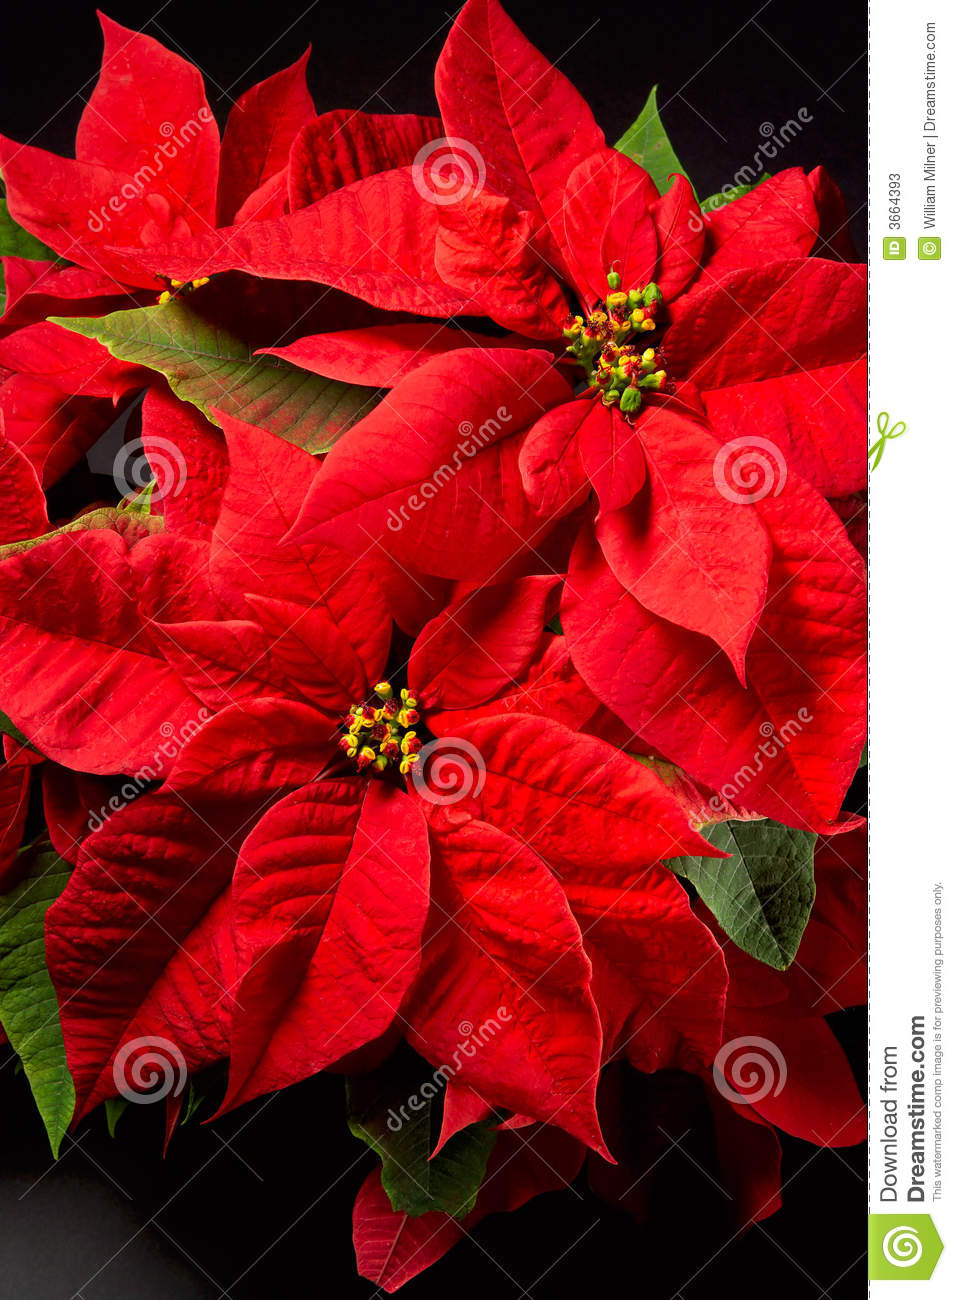 poinsettias photos stock image 3664393. Black Bedroom Furniture Sets. Home Design Ideas